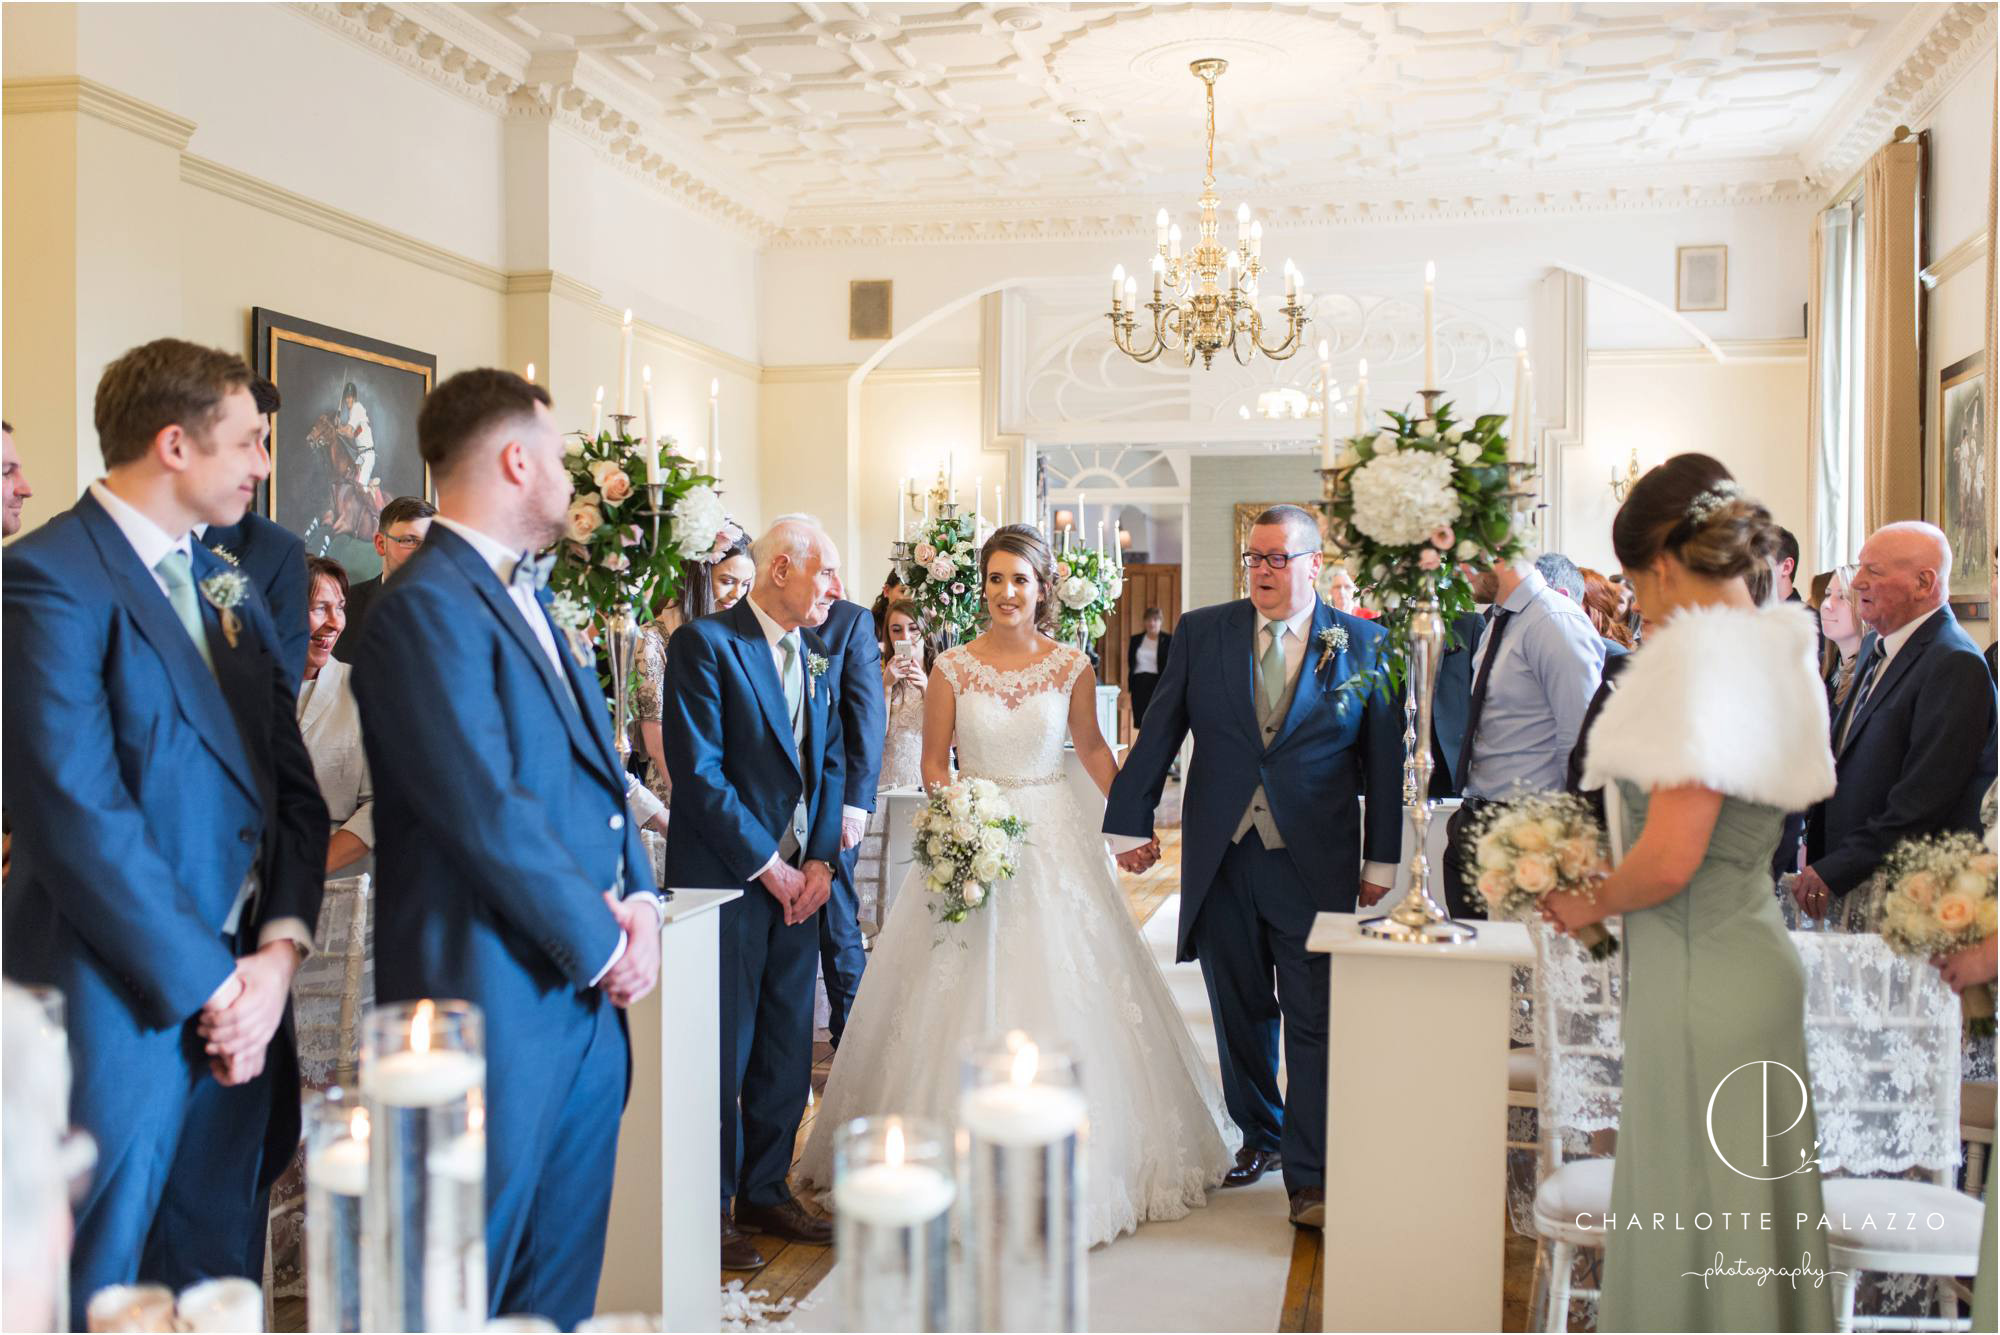 Kirst_Peter_Snowy_Nunsmere_Hall_Winter_Wedding_Cheshire_Photographer_0010.jpg